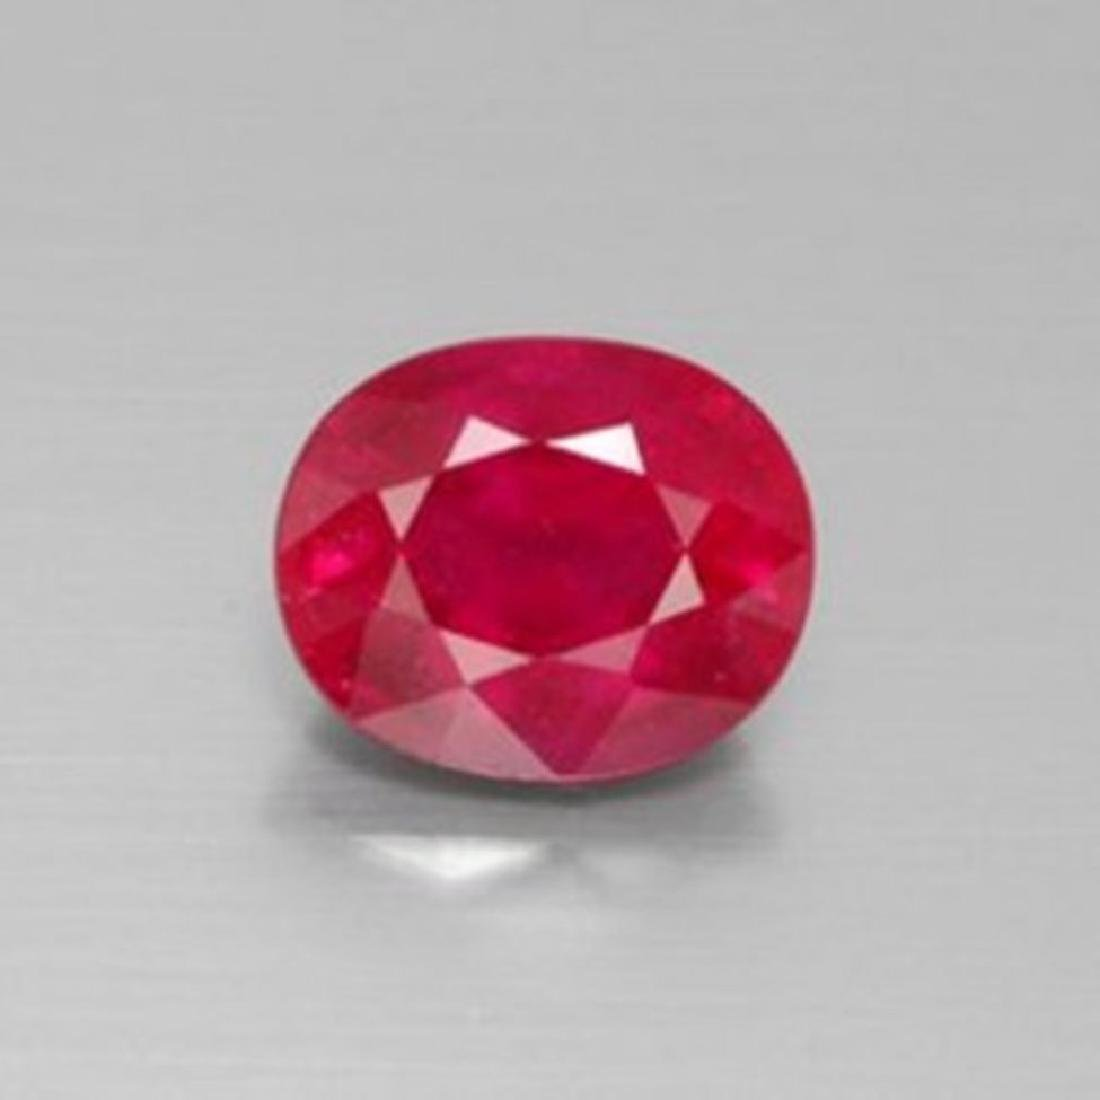 Loose Ruby Oval Fecet  1.89Ct 8x6.1x4.1mm